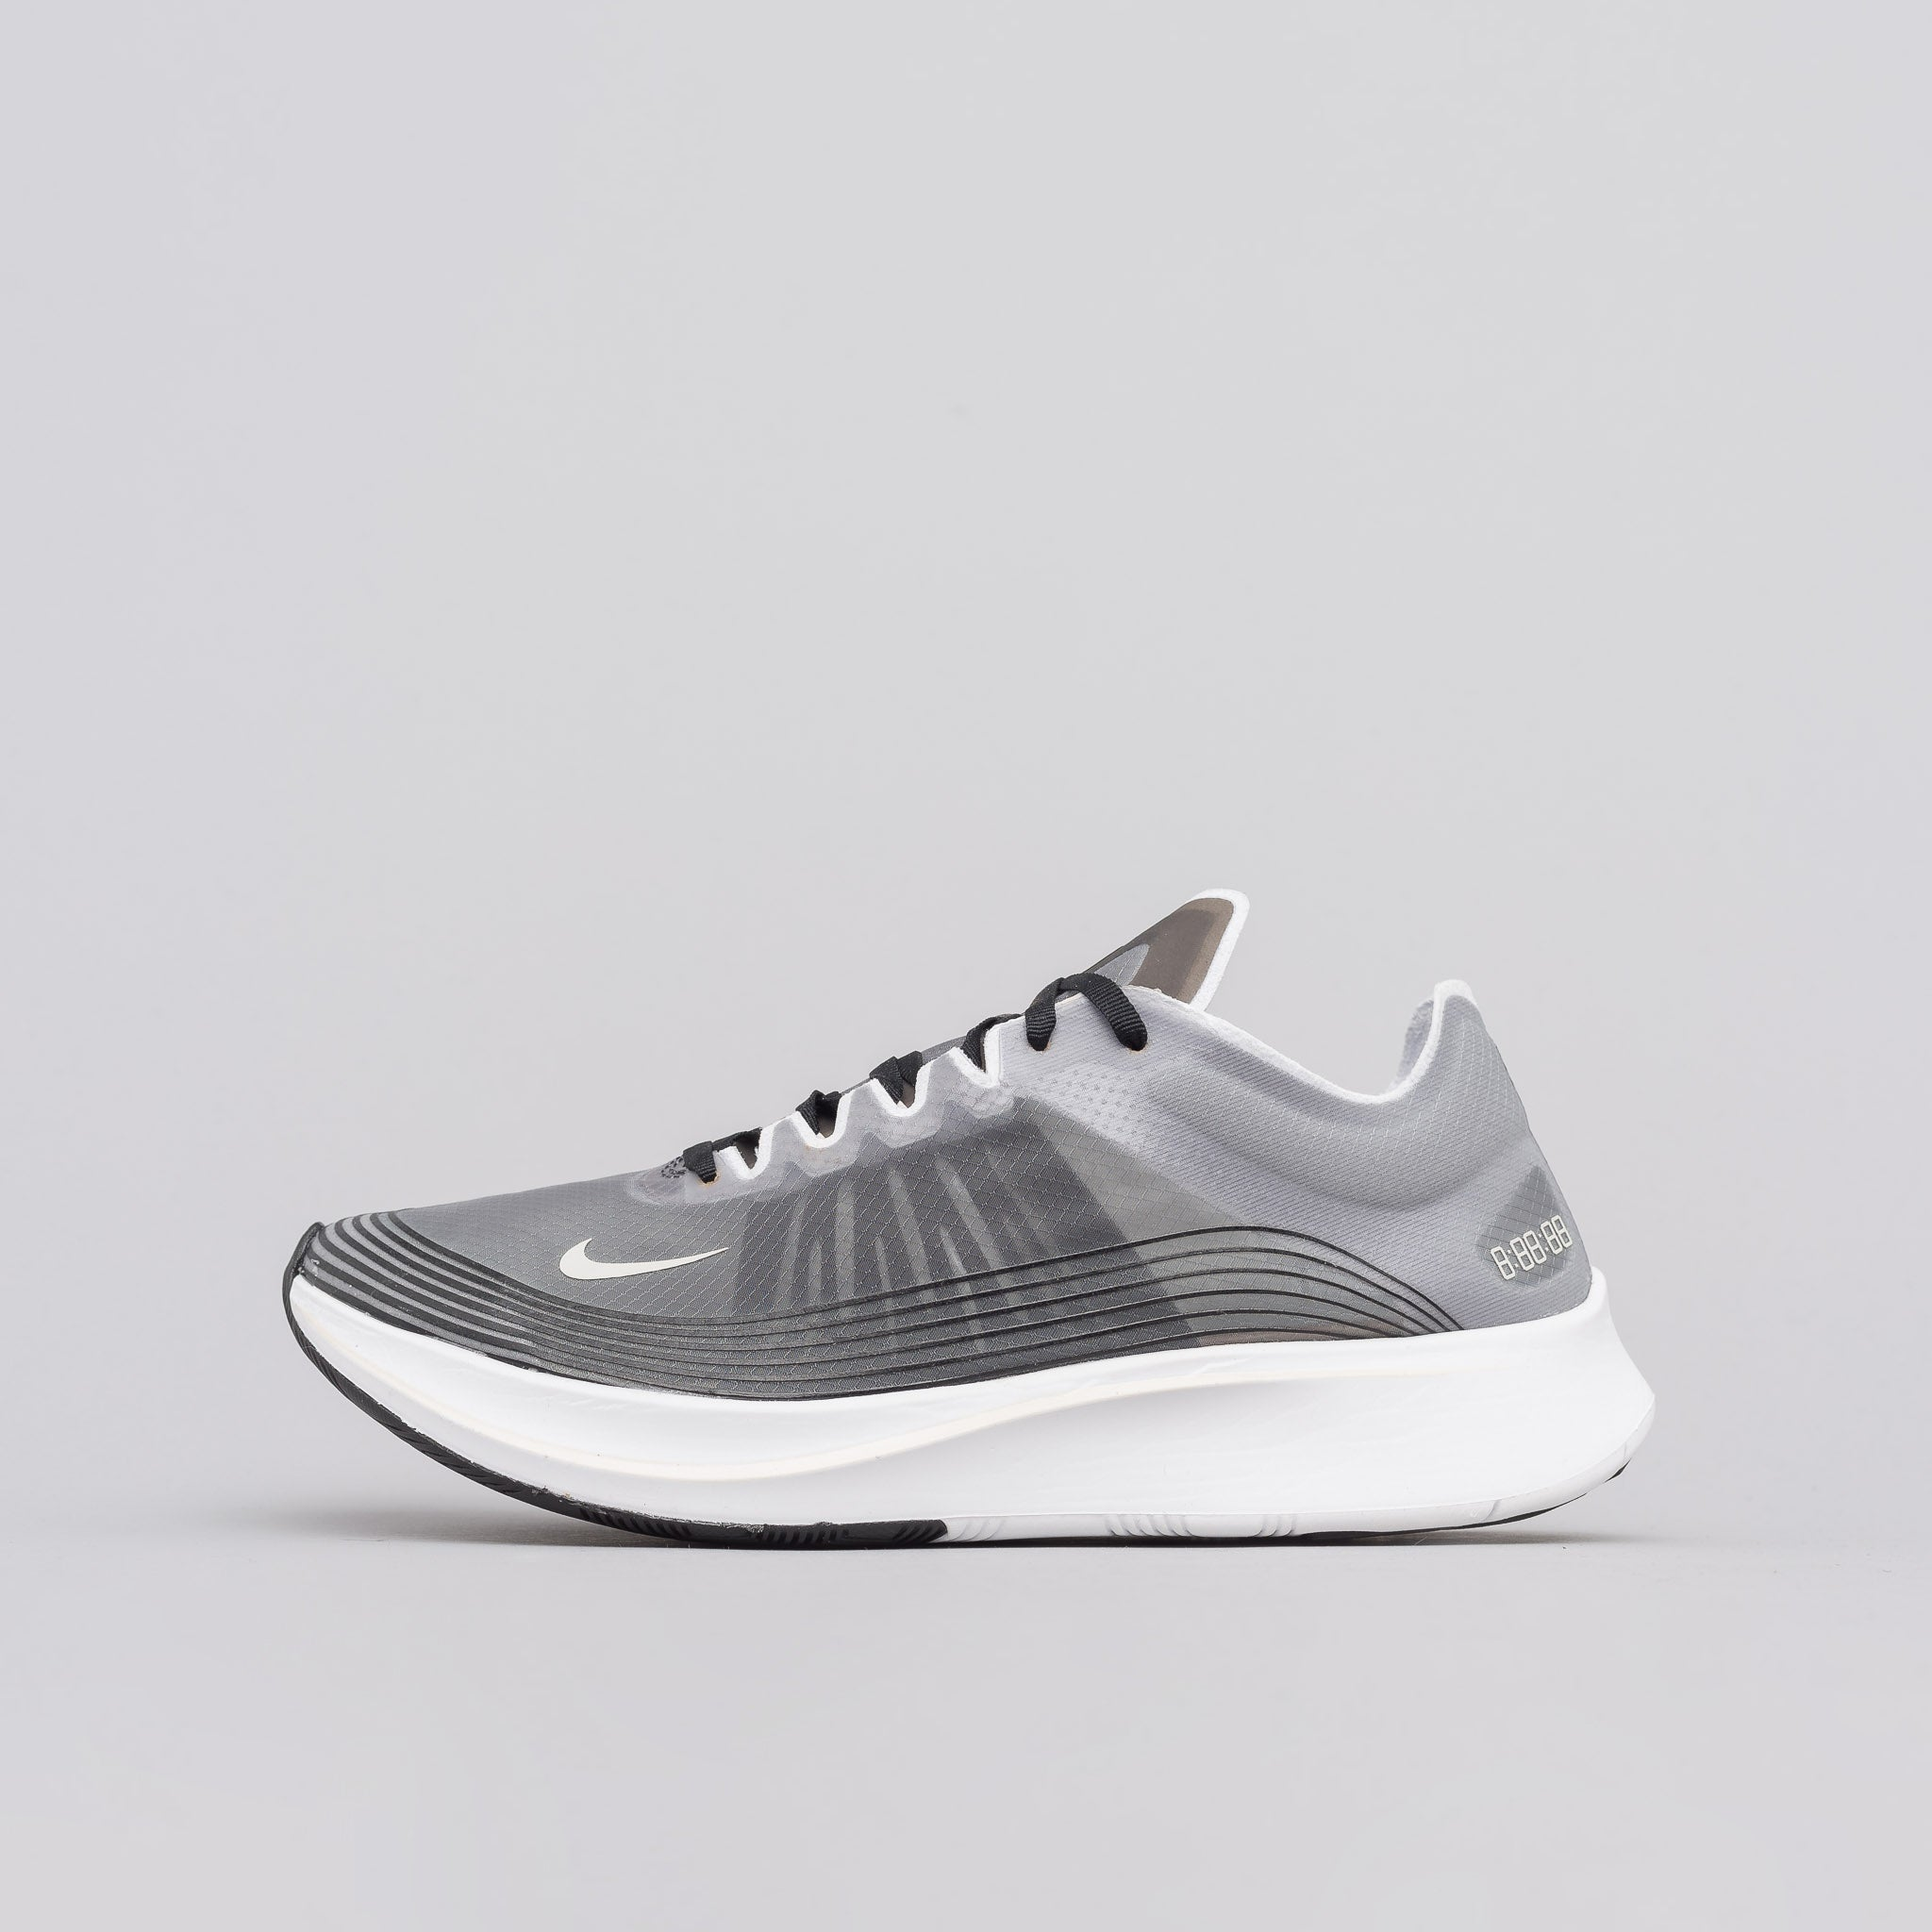 Zoom Fly SP in Black/Light Bone